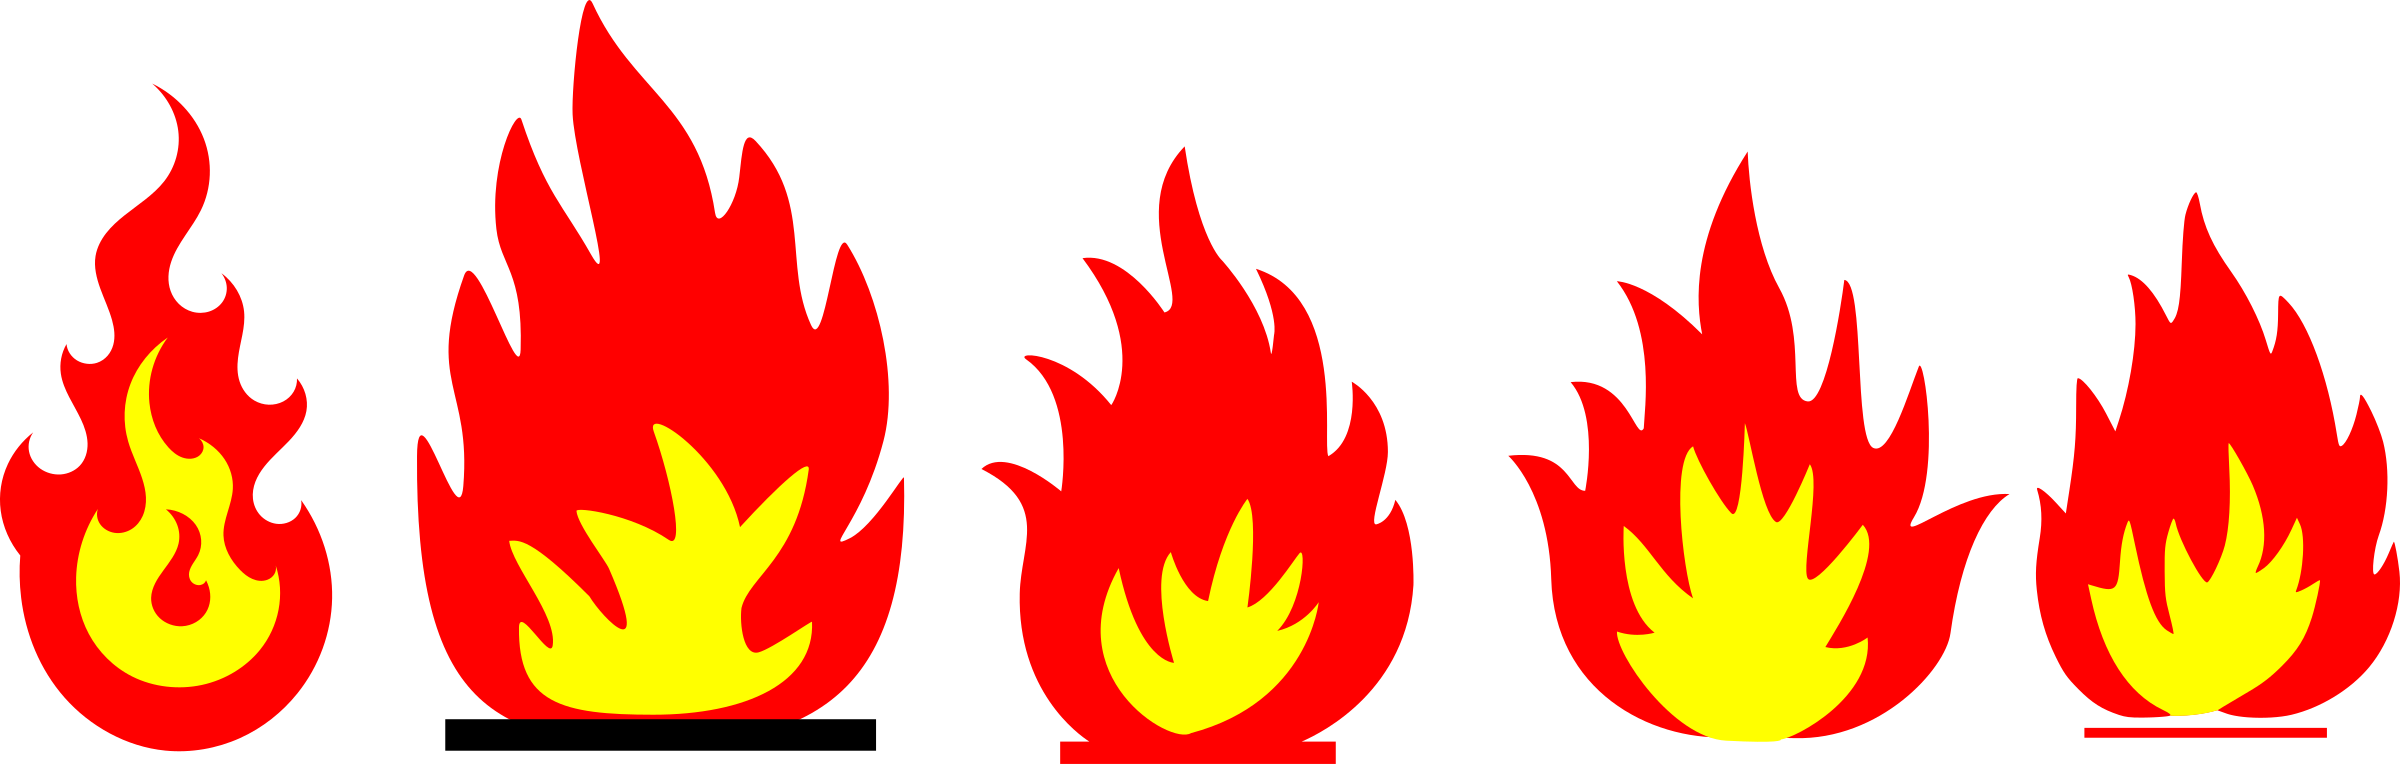 Flames clipart fire pattern. And remixes icons png